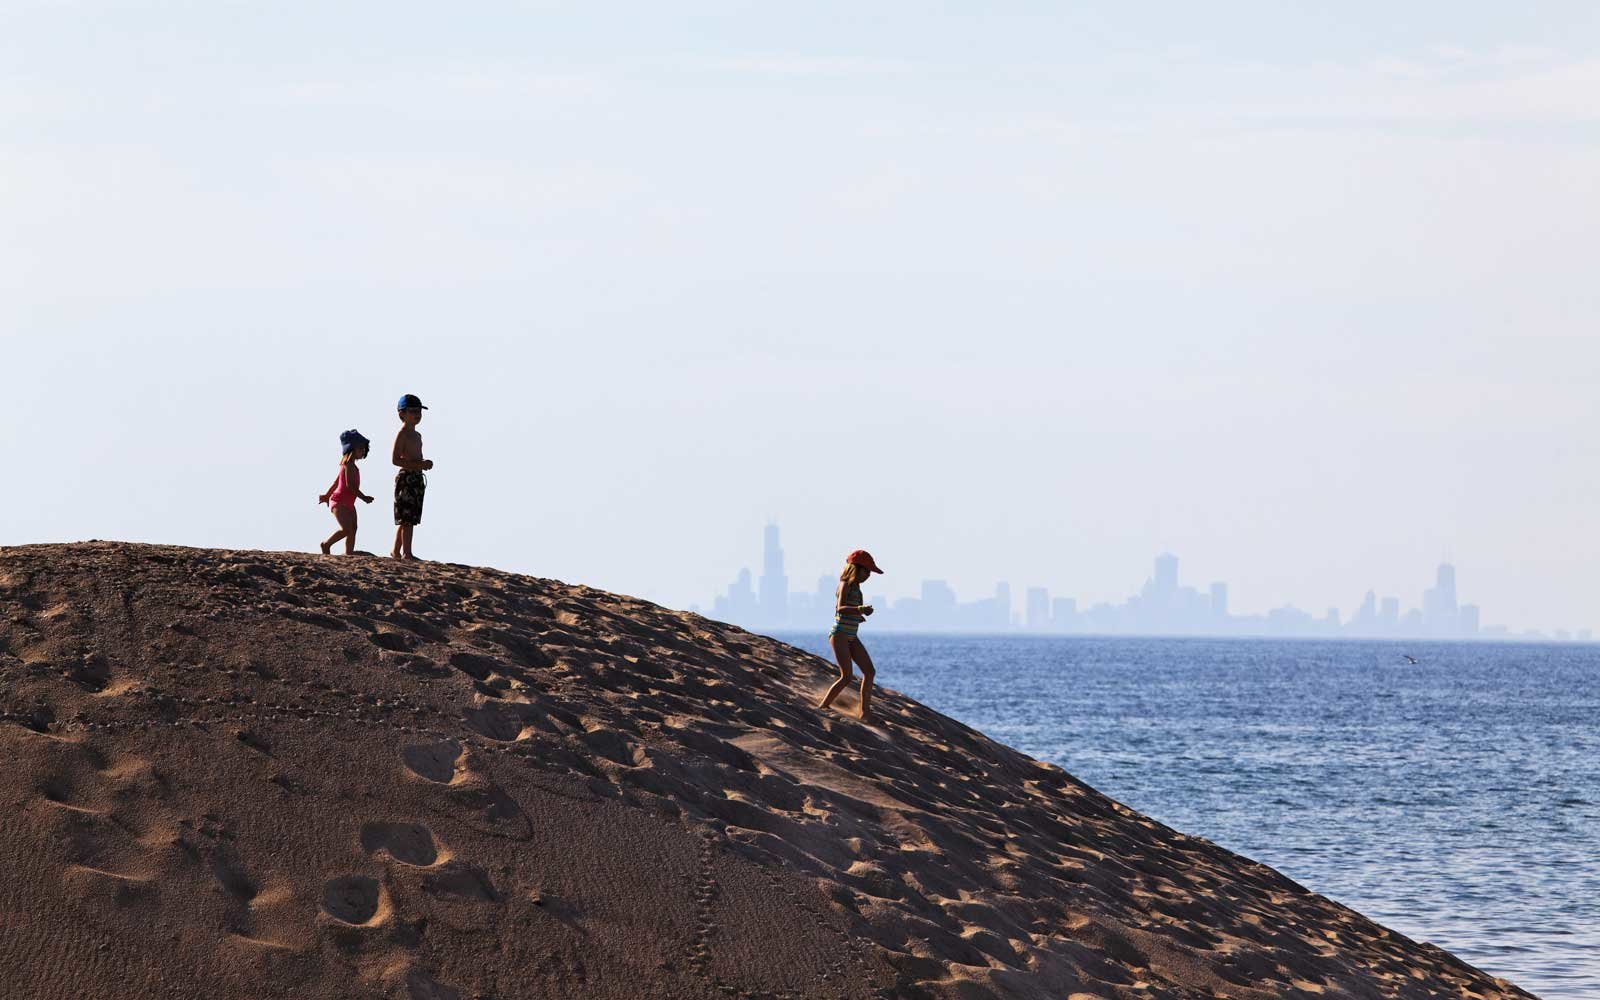 Kids standing on a sand dune in Indiana Dunes National Lakeshore park with skyline of downtown Chicago in the background.